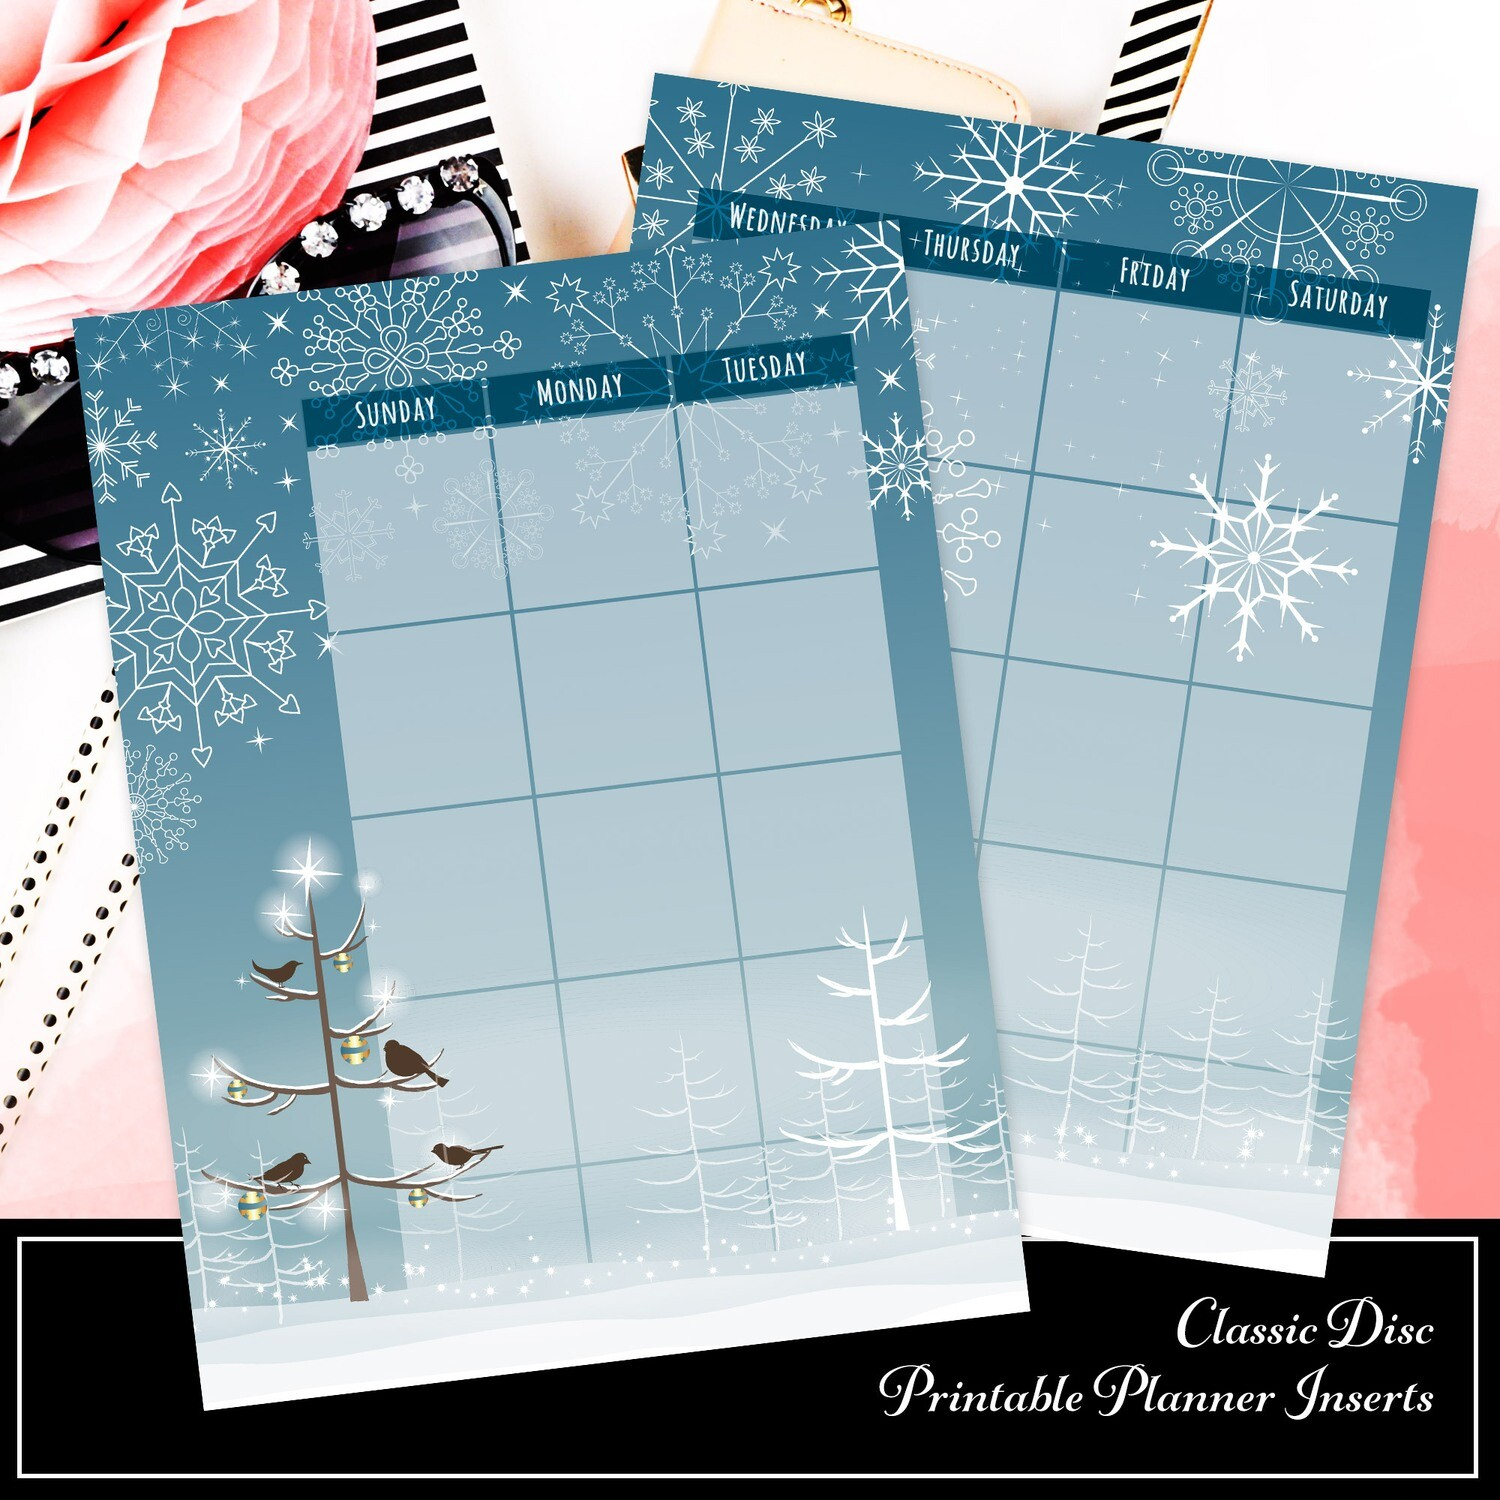 CLASSIC - Winter Monthly Printable Planner Insert